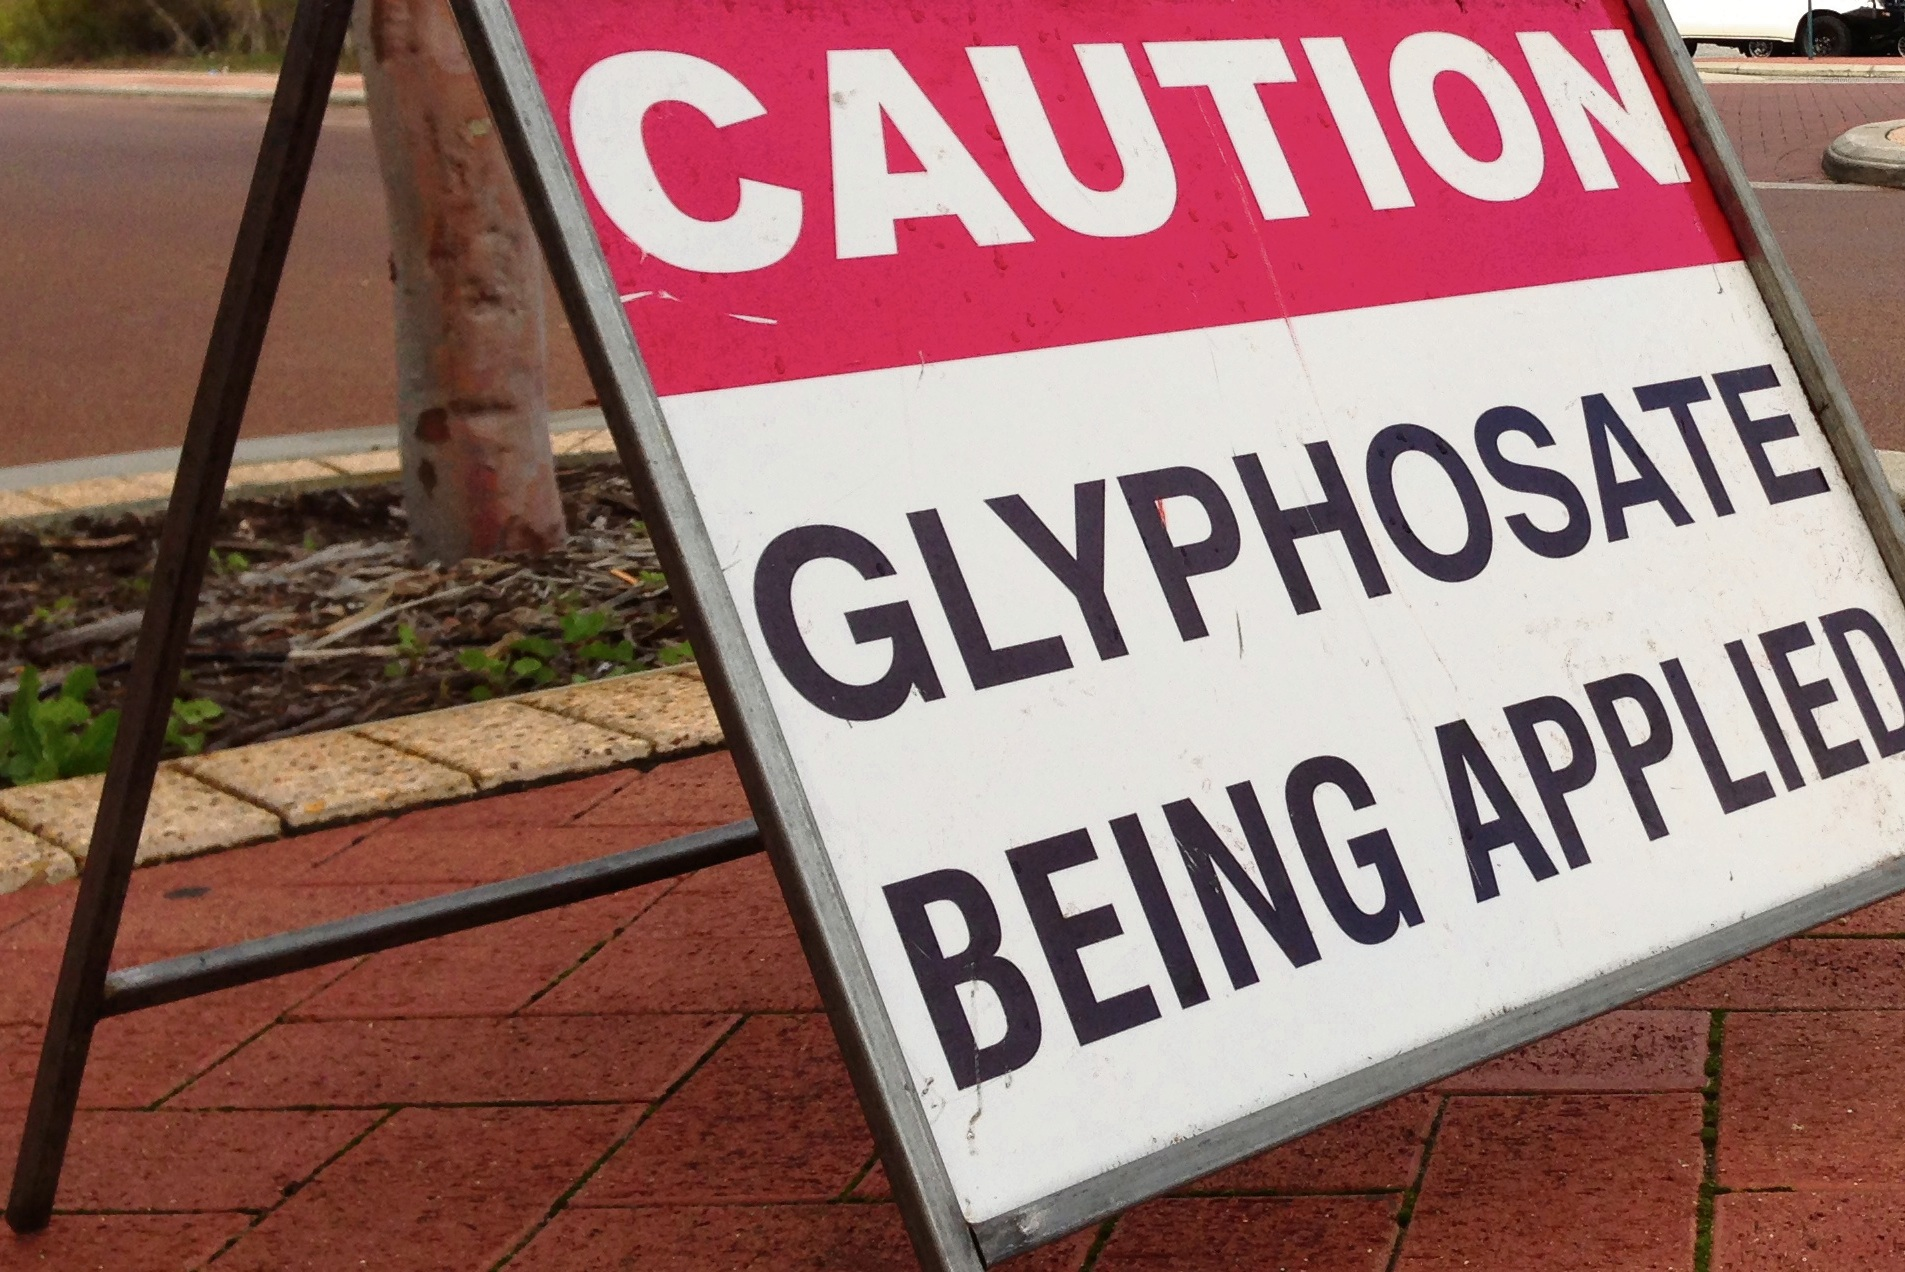 City of Swan monitoring research into glyphosate use